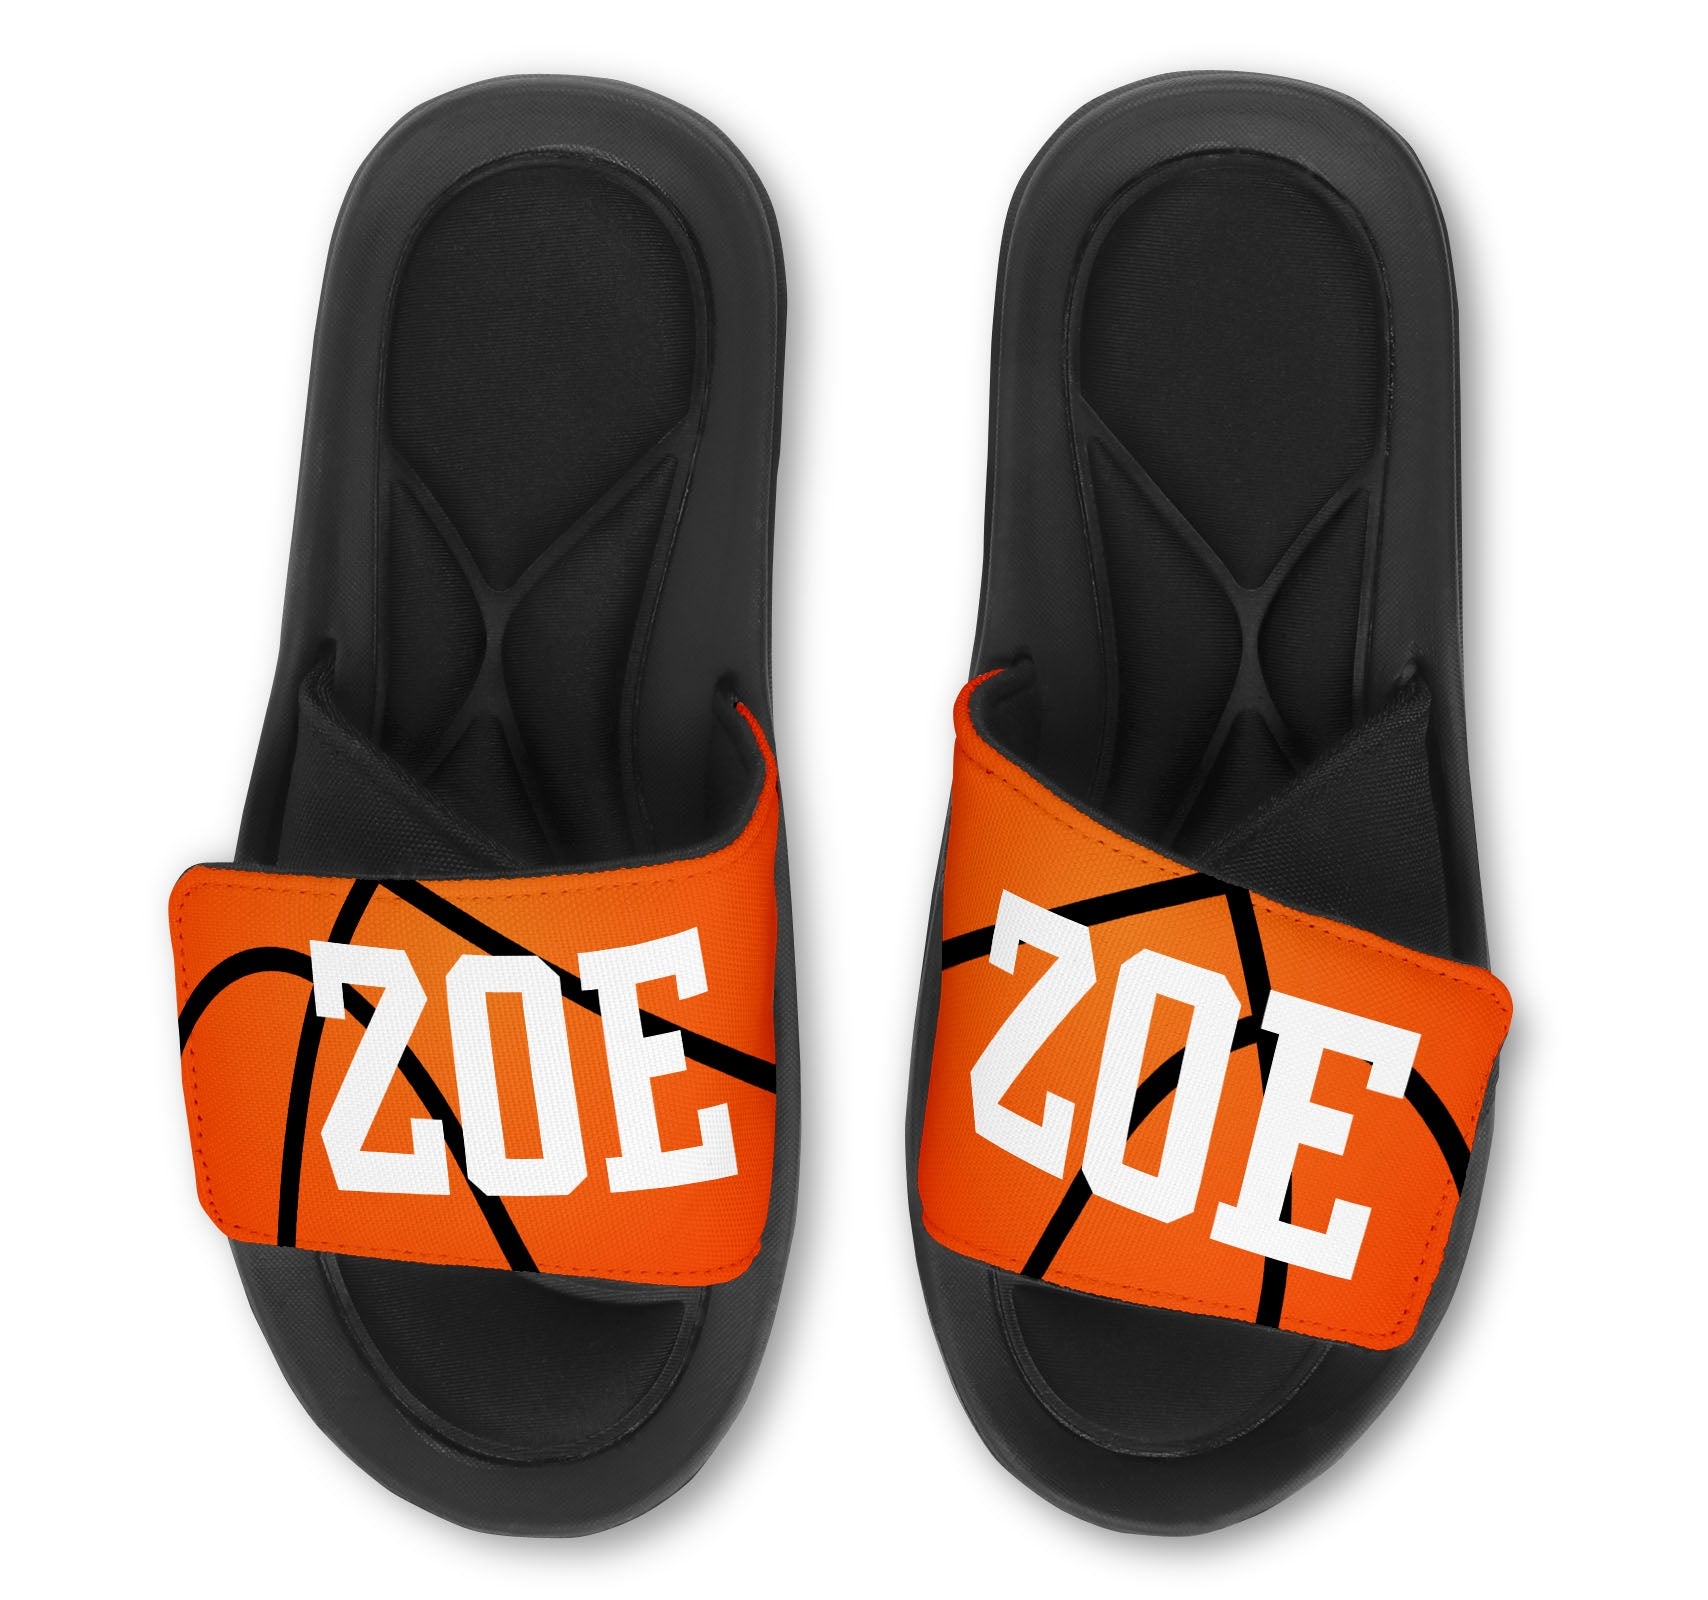 BASKETBALL Slides (Faux Basketball) - Customize with Your Name and/or Number